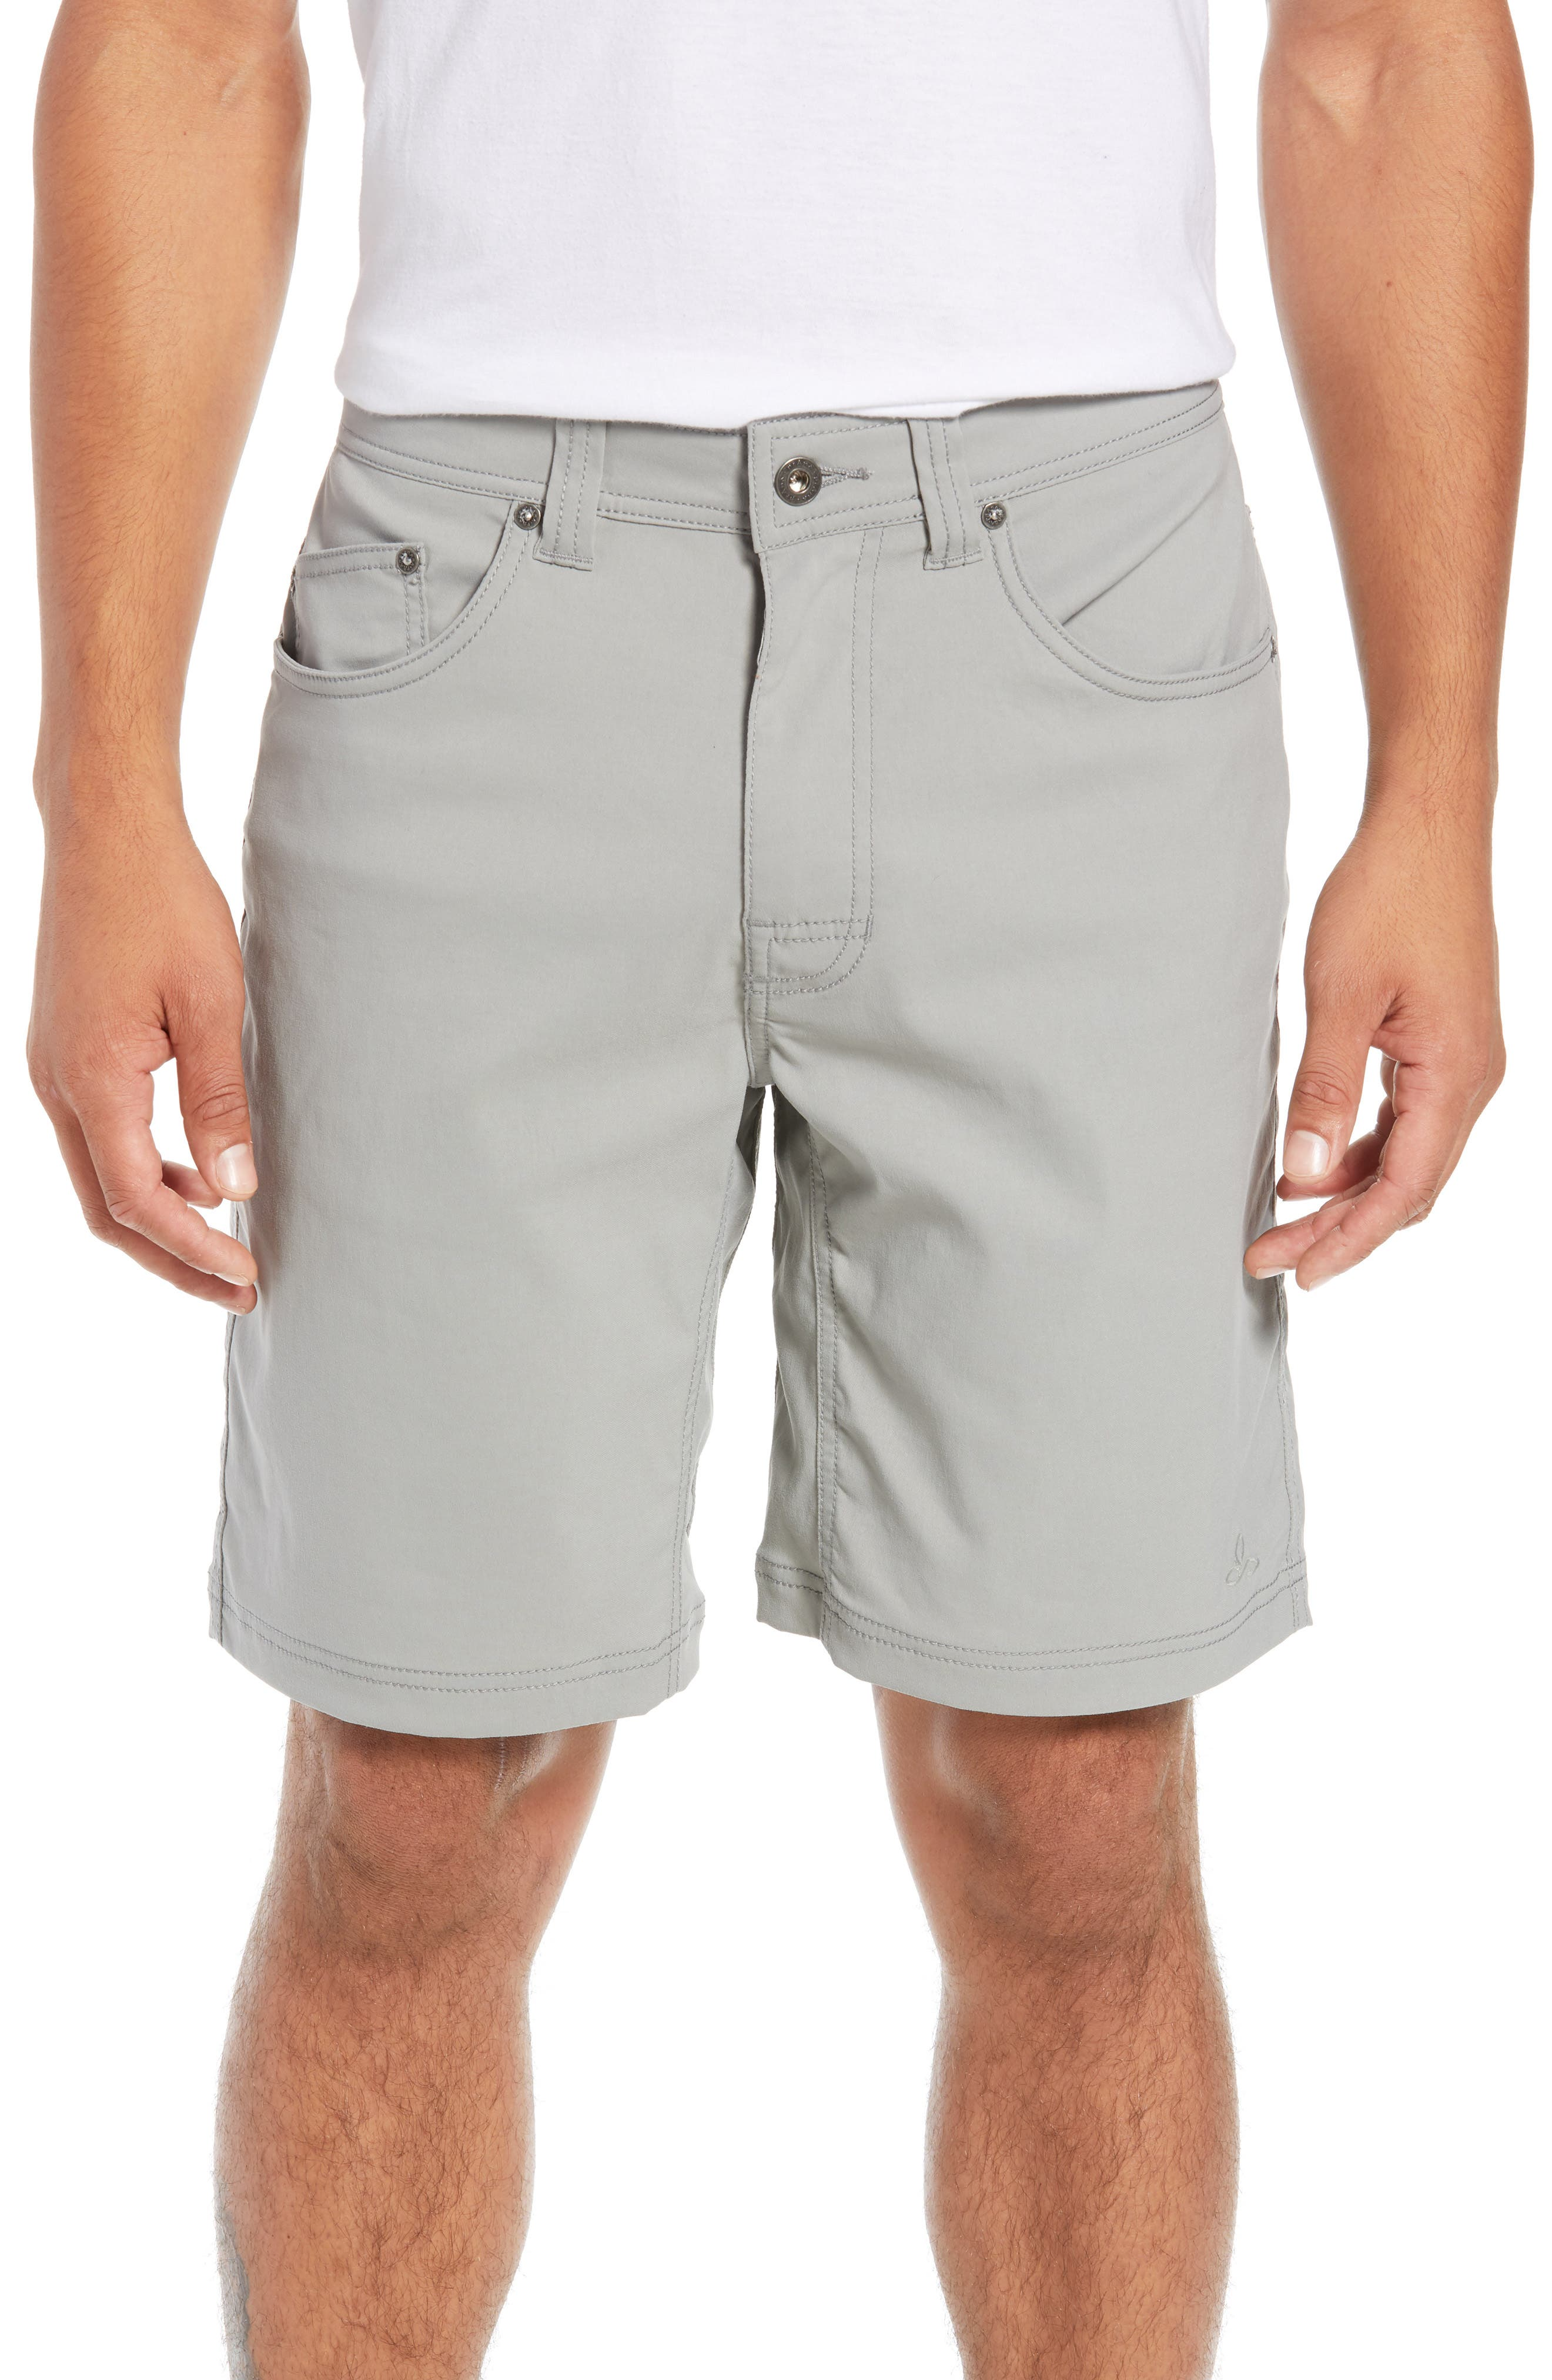 Brion Slim Fit Shorts,                         Main,                         color, Grey